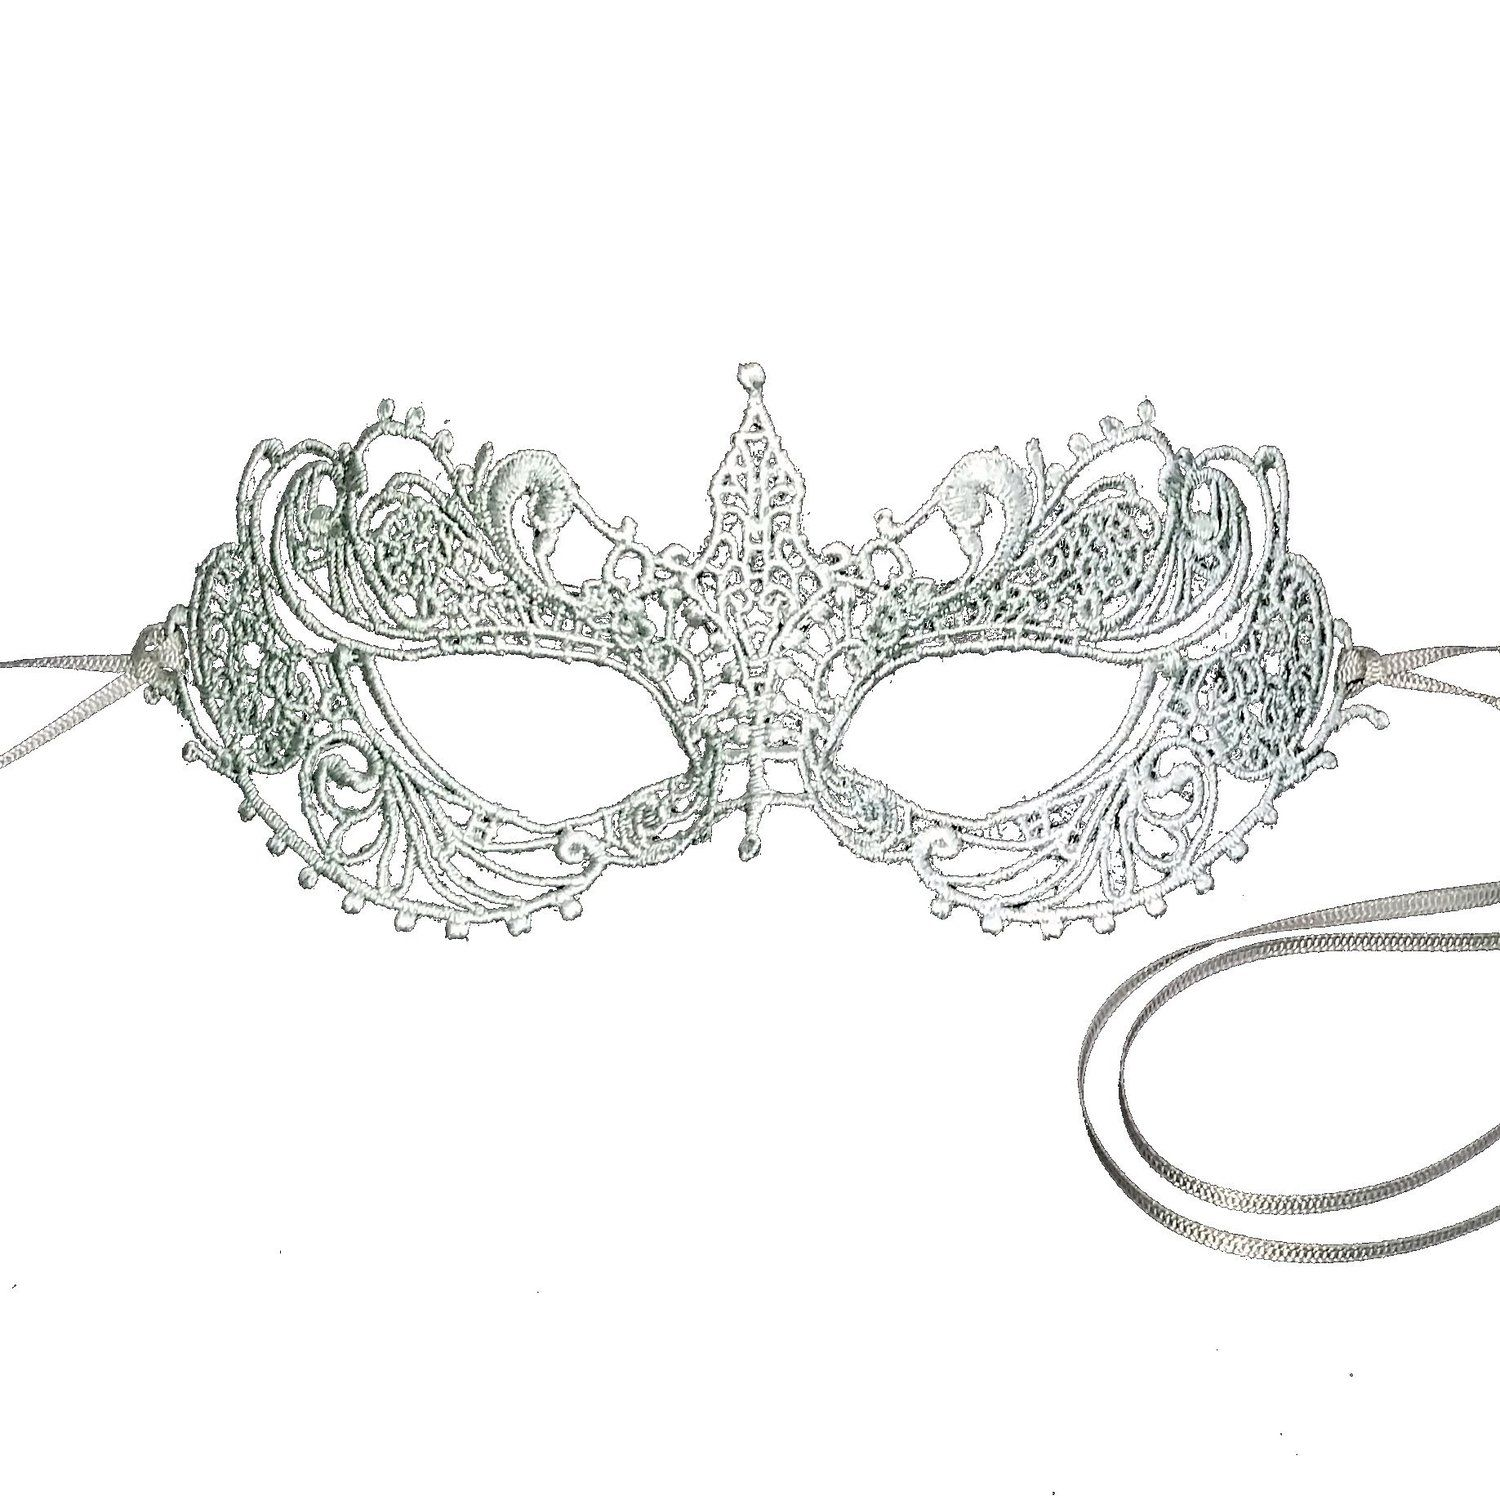 Masquerade mask masquerade mask vine mask metal lace masquerade - Mask Dakota Johnson Fifty Shades Darker 2017 Fifty Shades Darker Dakota Johnson And Fifty Shades